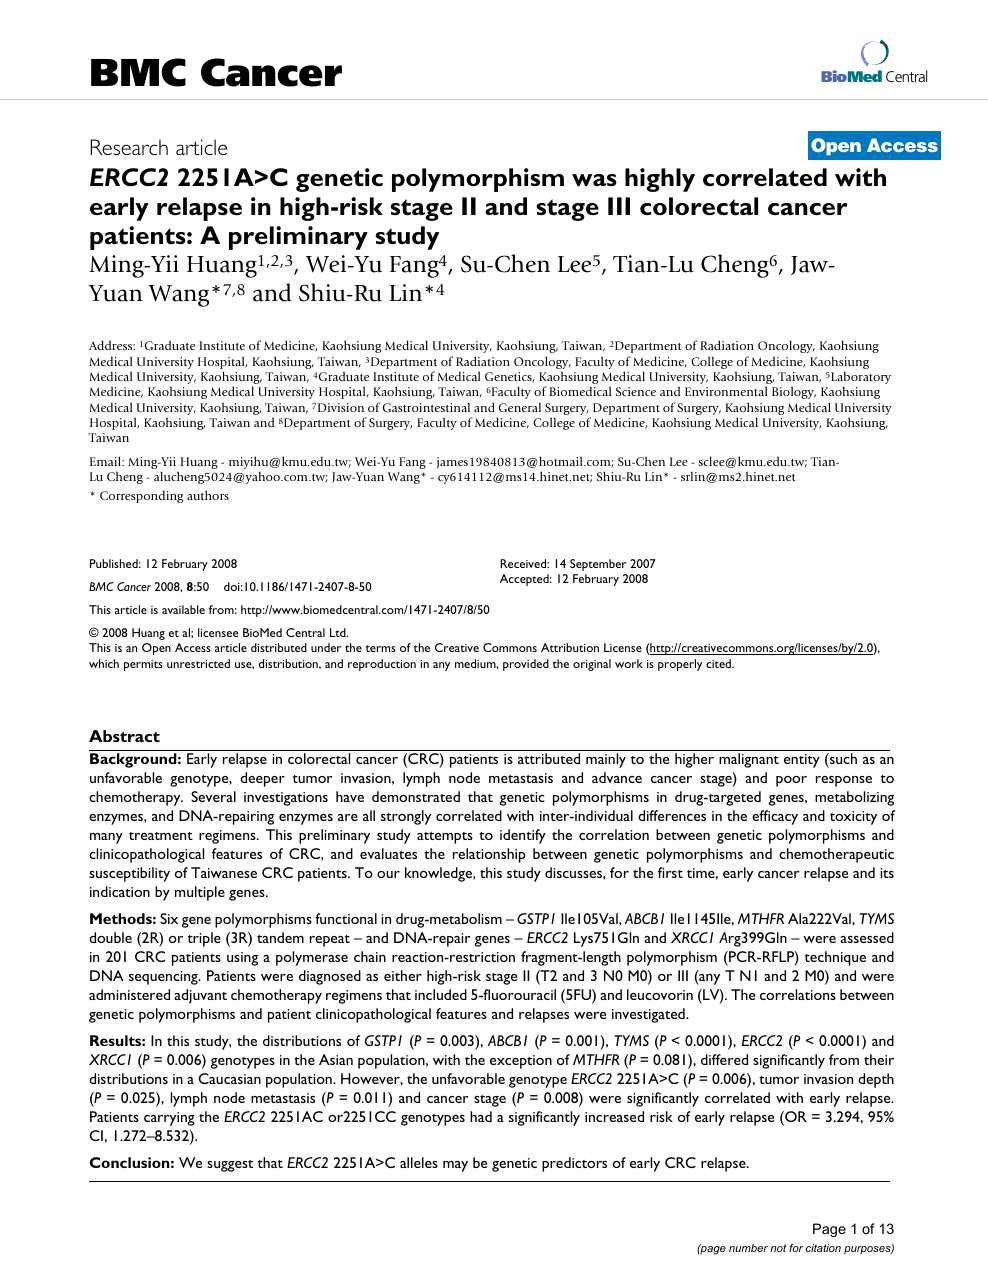 ERCC2 2251A>C genetic polymorphism was highly correlated with early